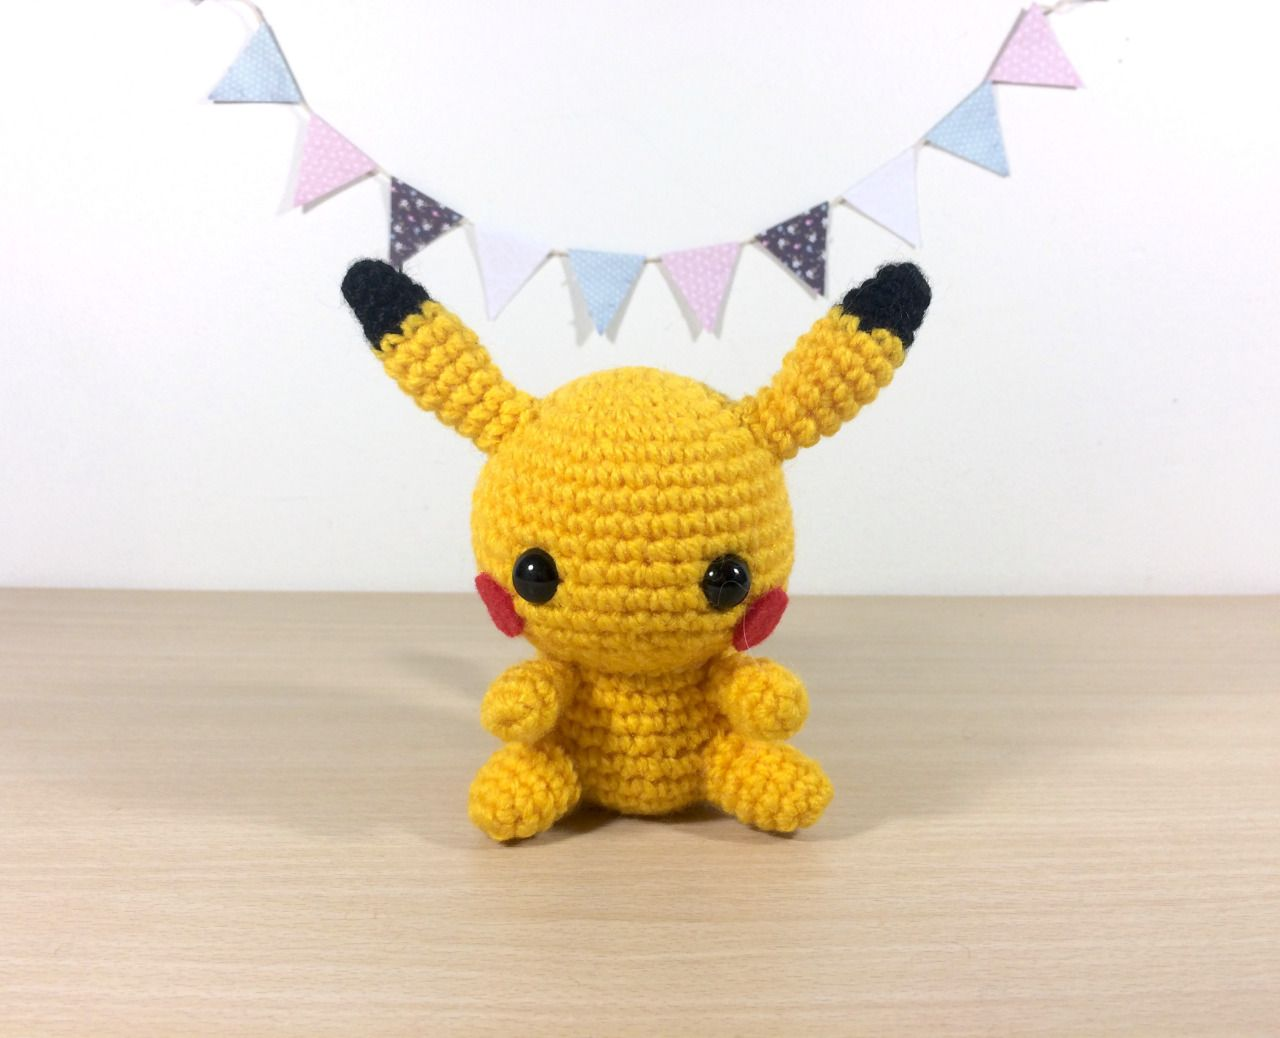 12 Free Pokemon Go Amigurumi Crochet Patterns | Pikachu, Lo siento y ...